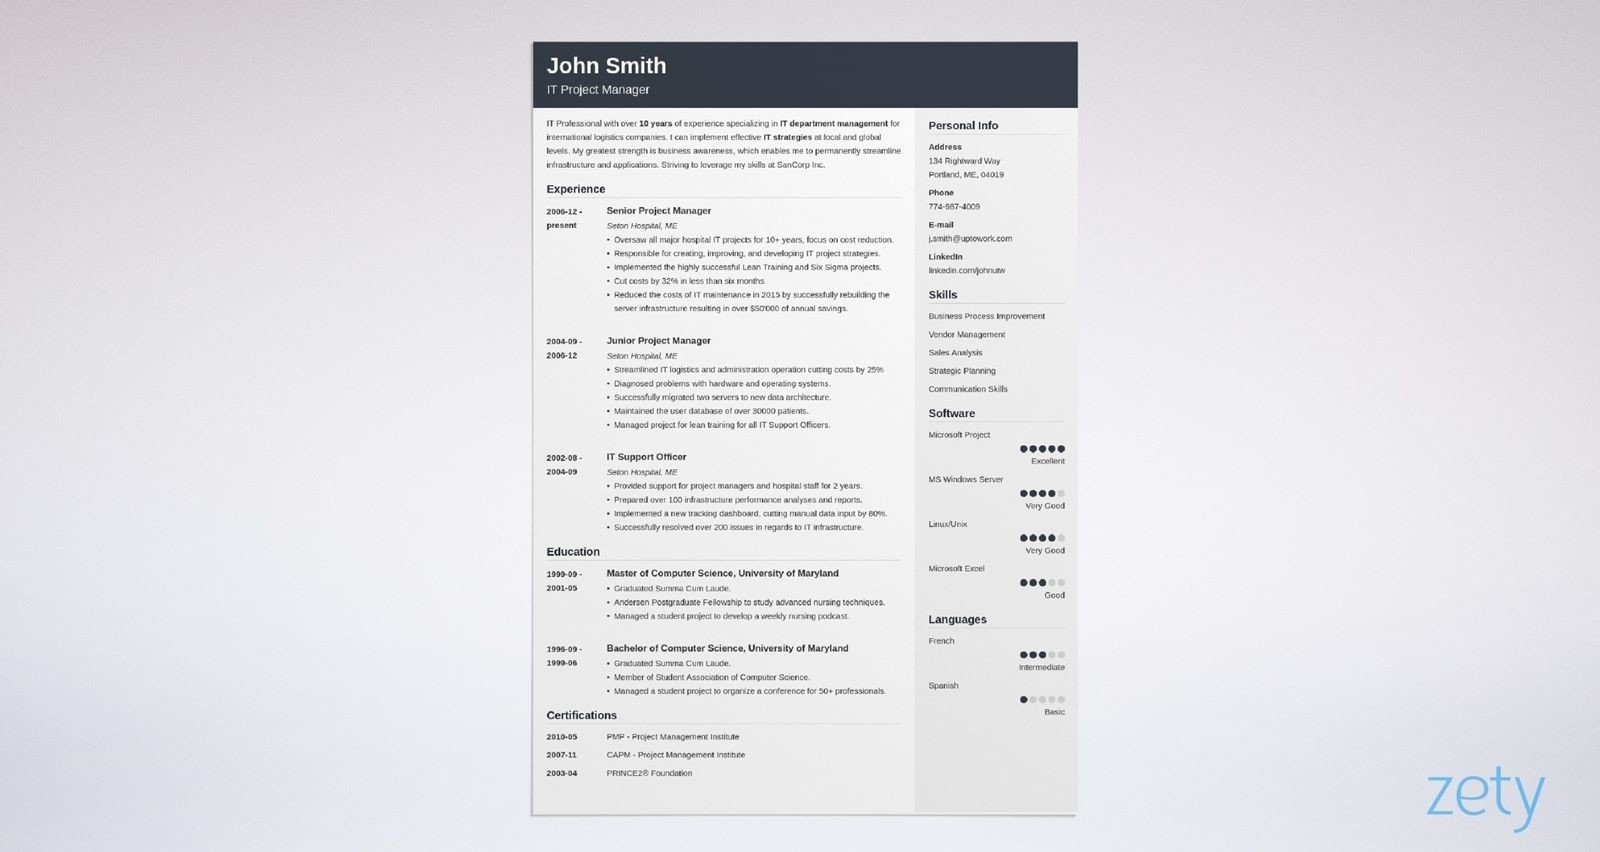 Top 14 Best Resume Templates to Download in 2019 [Also Great for CV]